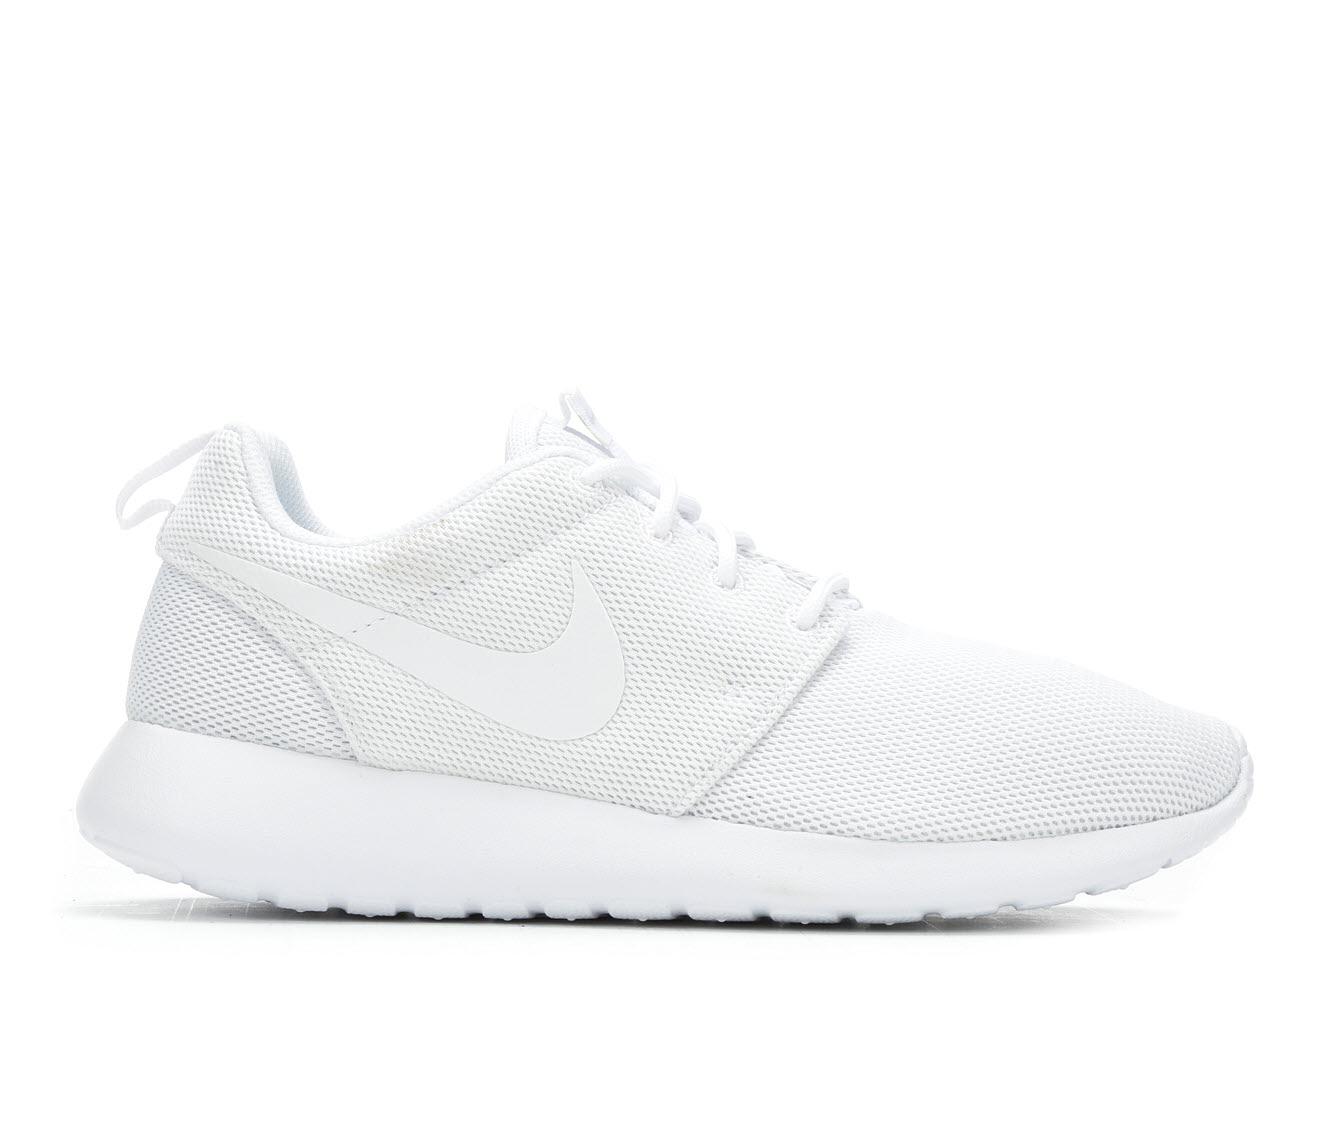 Nike Roshe One Women's Athletic Shoe (White)